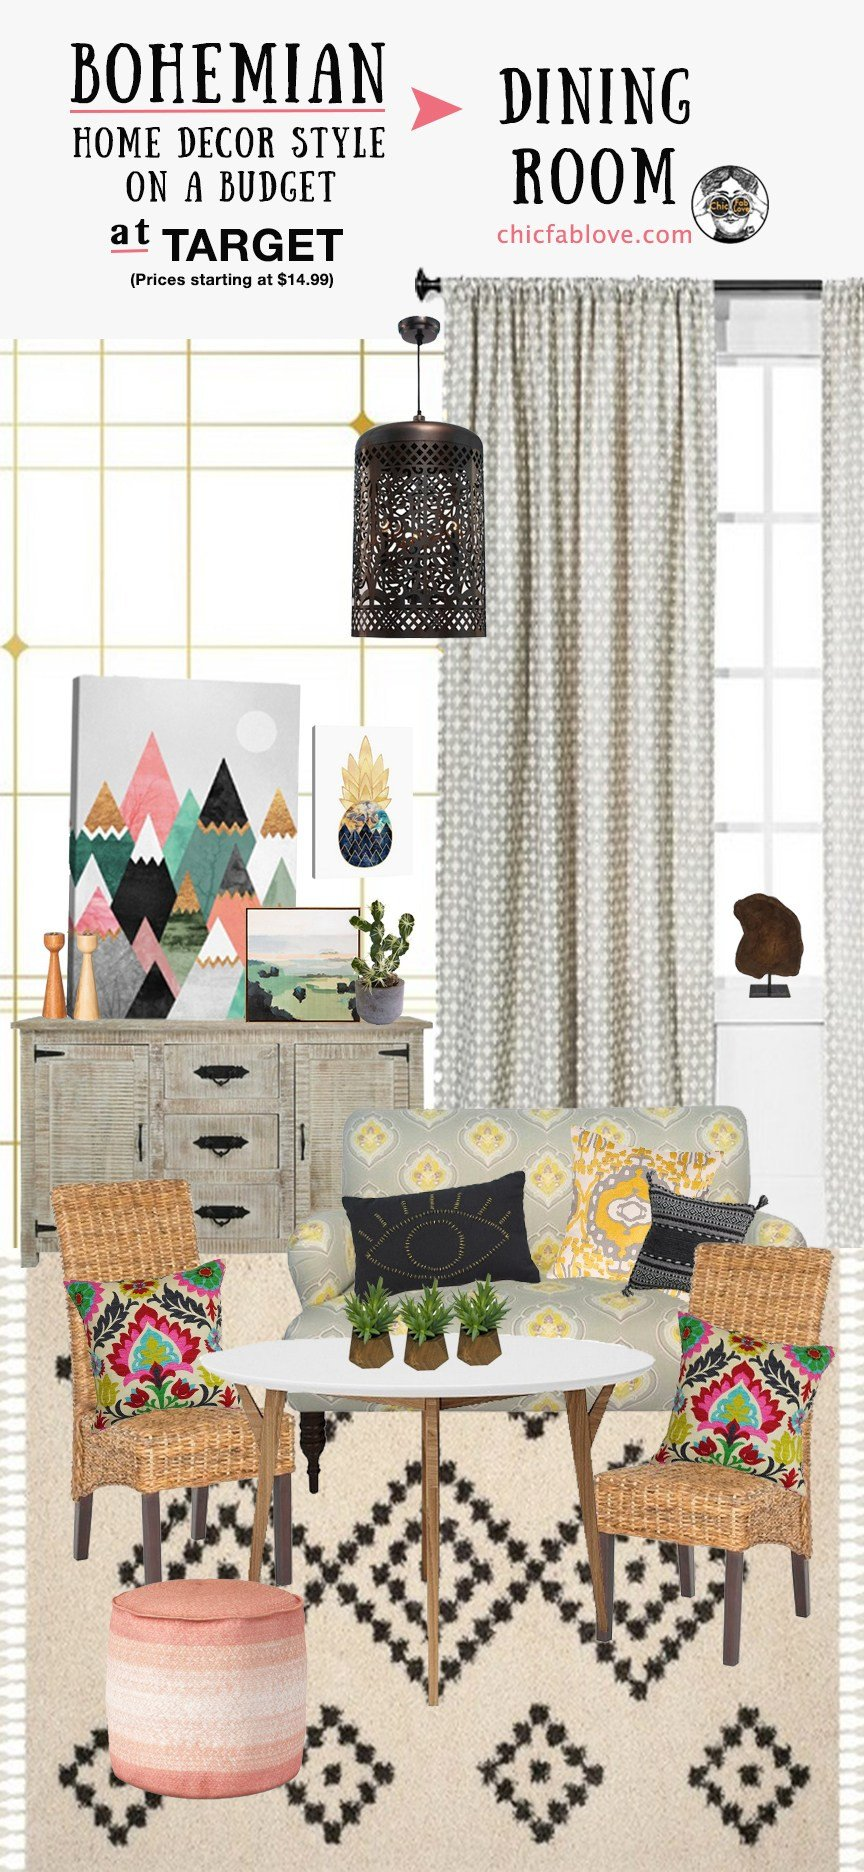 Bohemian Decor On A Budget Unique Bohemian Home Decor Style On A Bud at Tar Chic Fab Love